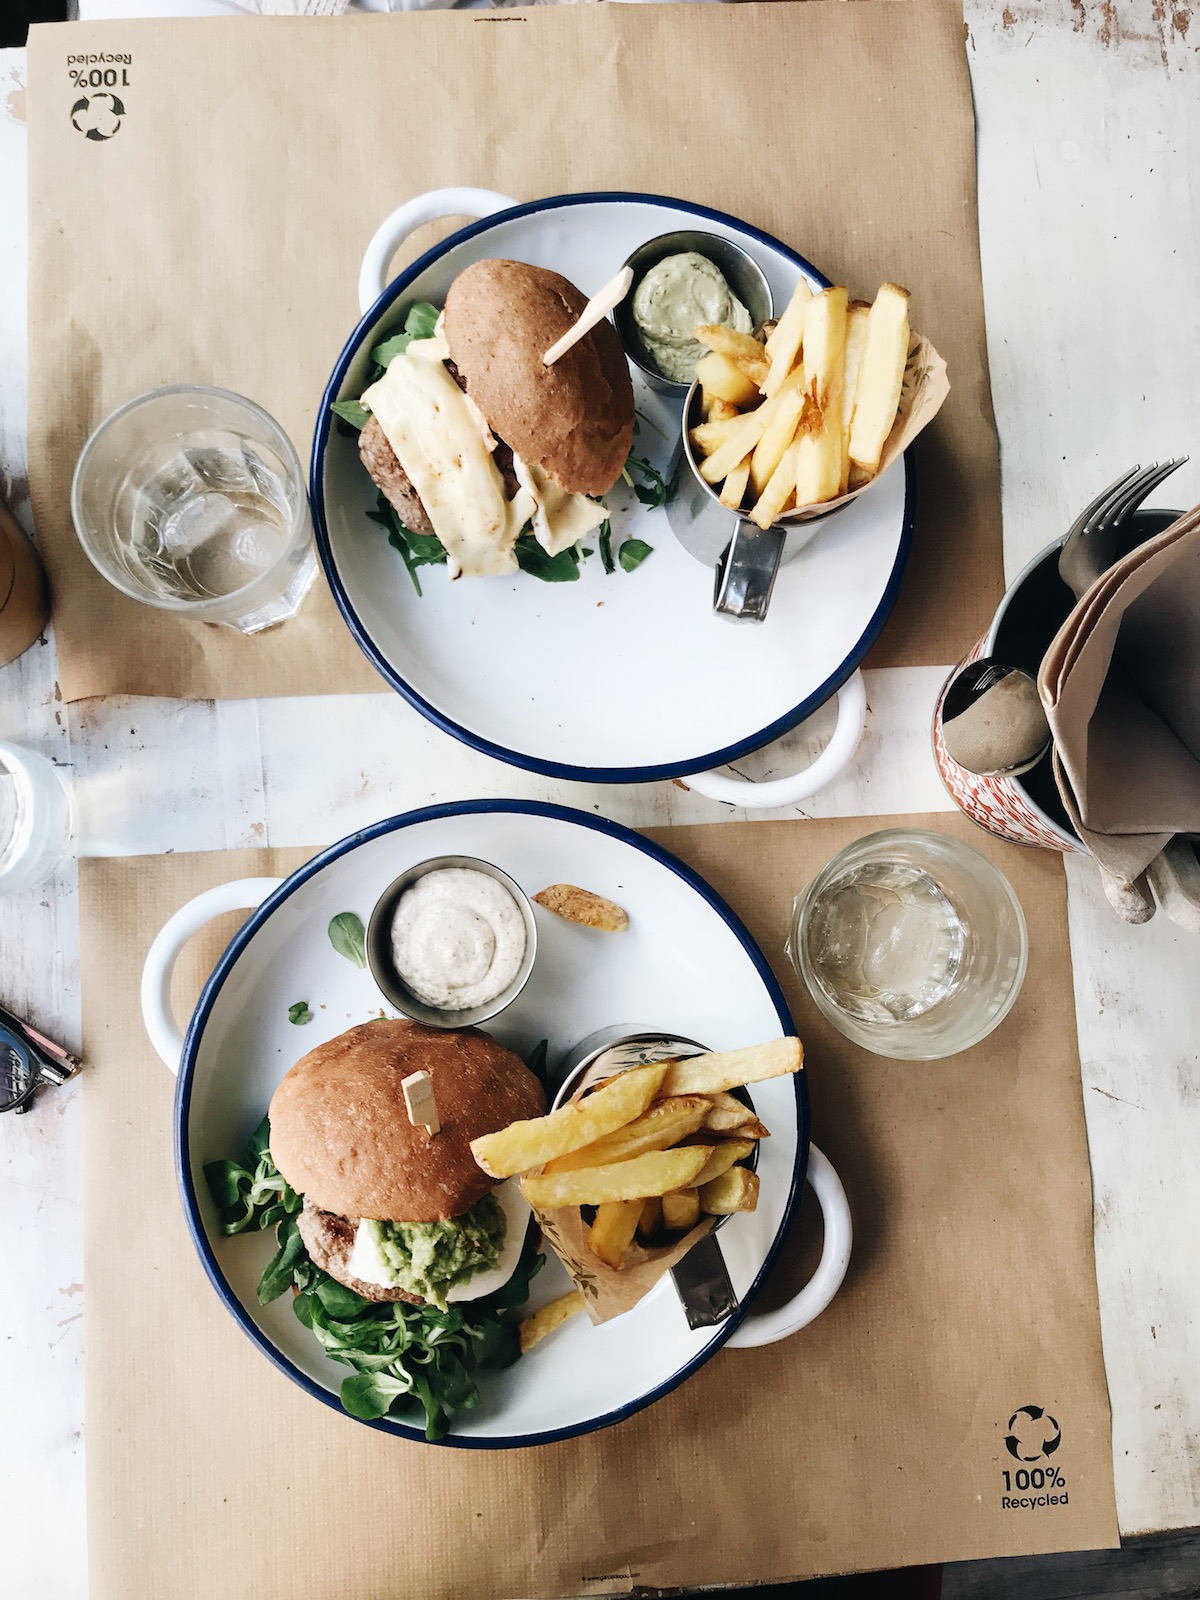 Noviembre Healthy Food   A Handful of Favorite Cafes + Eats in Malaga, Spain   Ruby Josephine